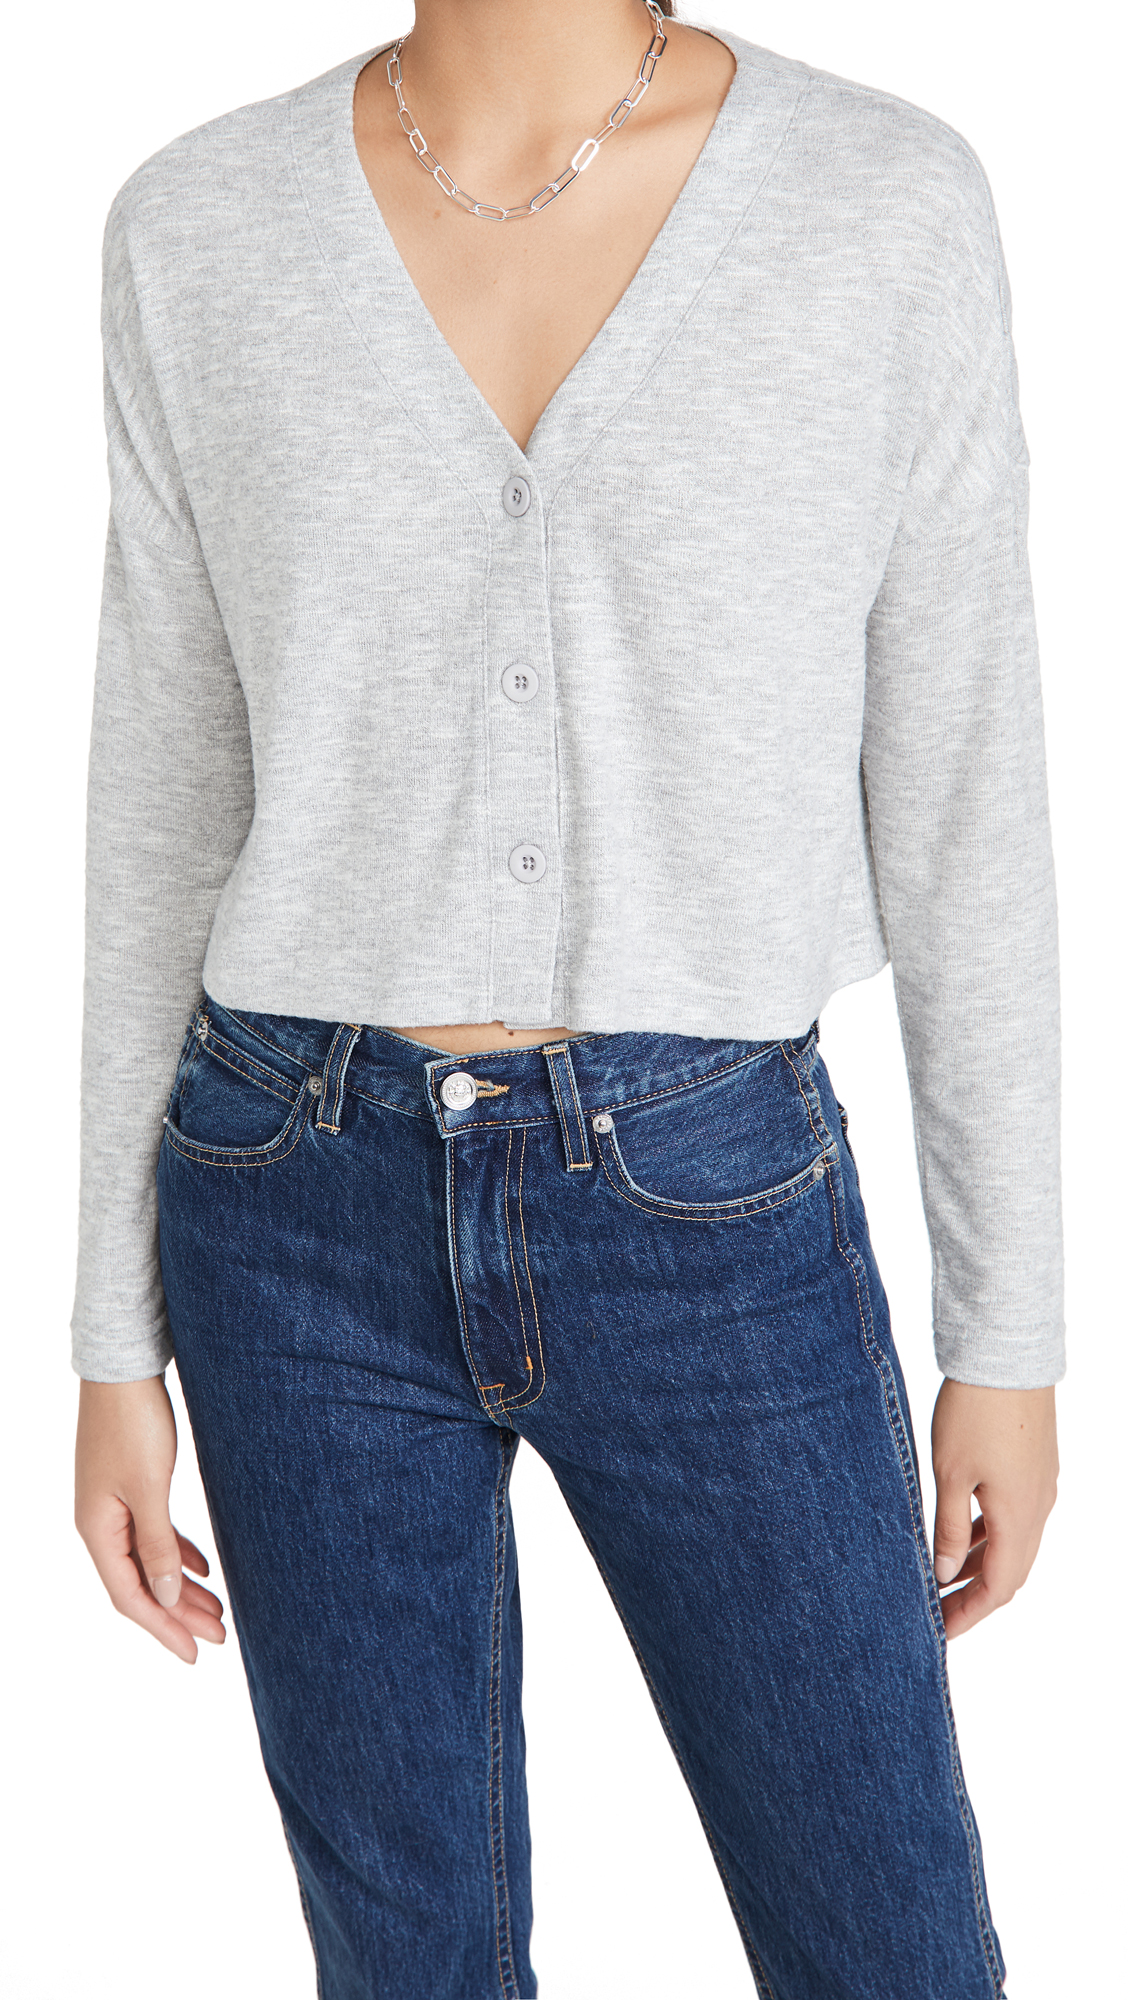 Z Supply Cher Slub Cardigan Top